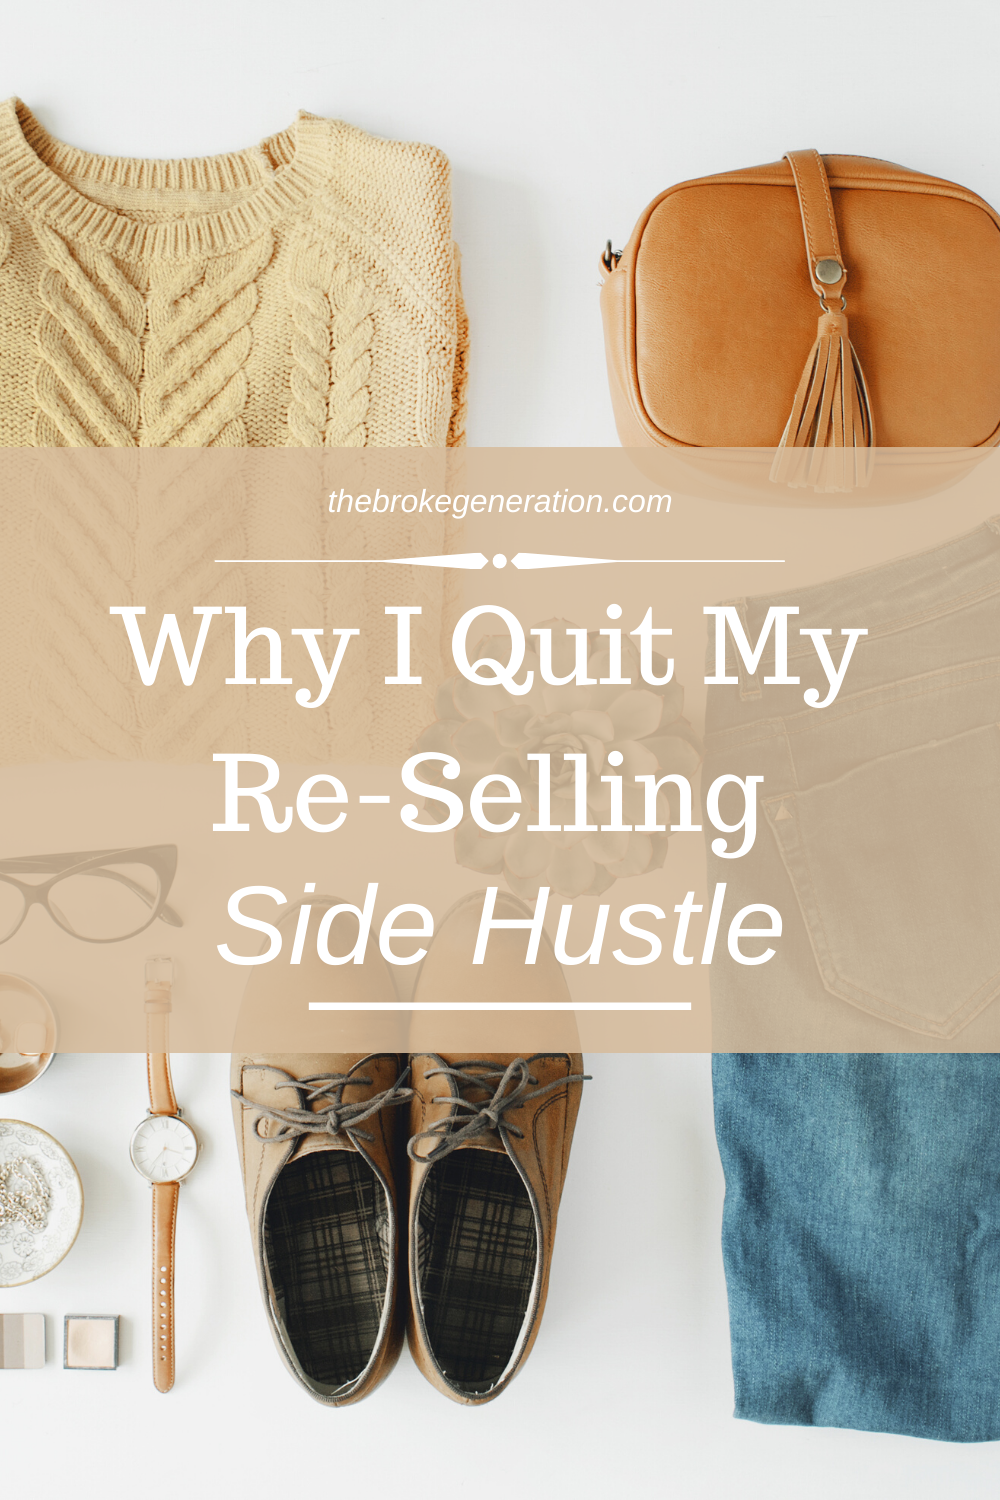 Why I Quit My Re-Selling Side Hustle